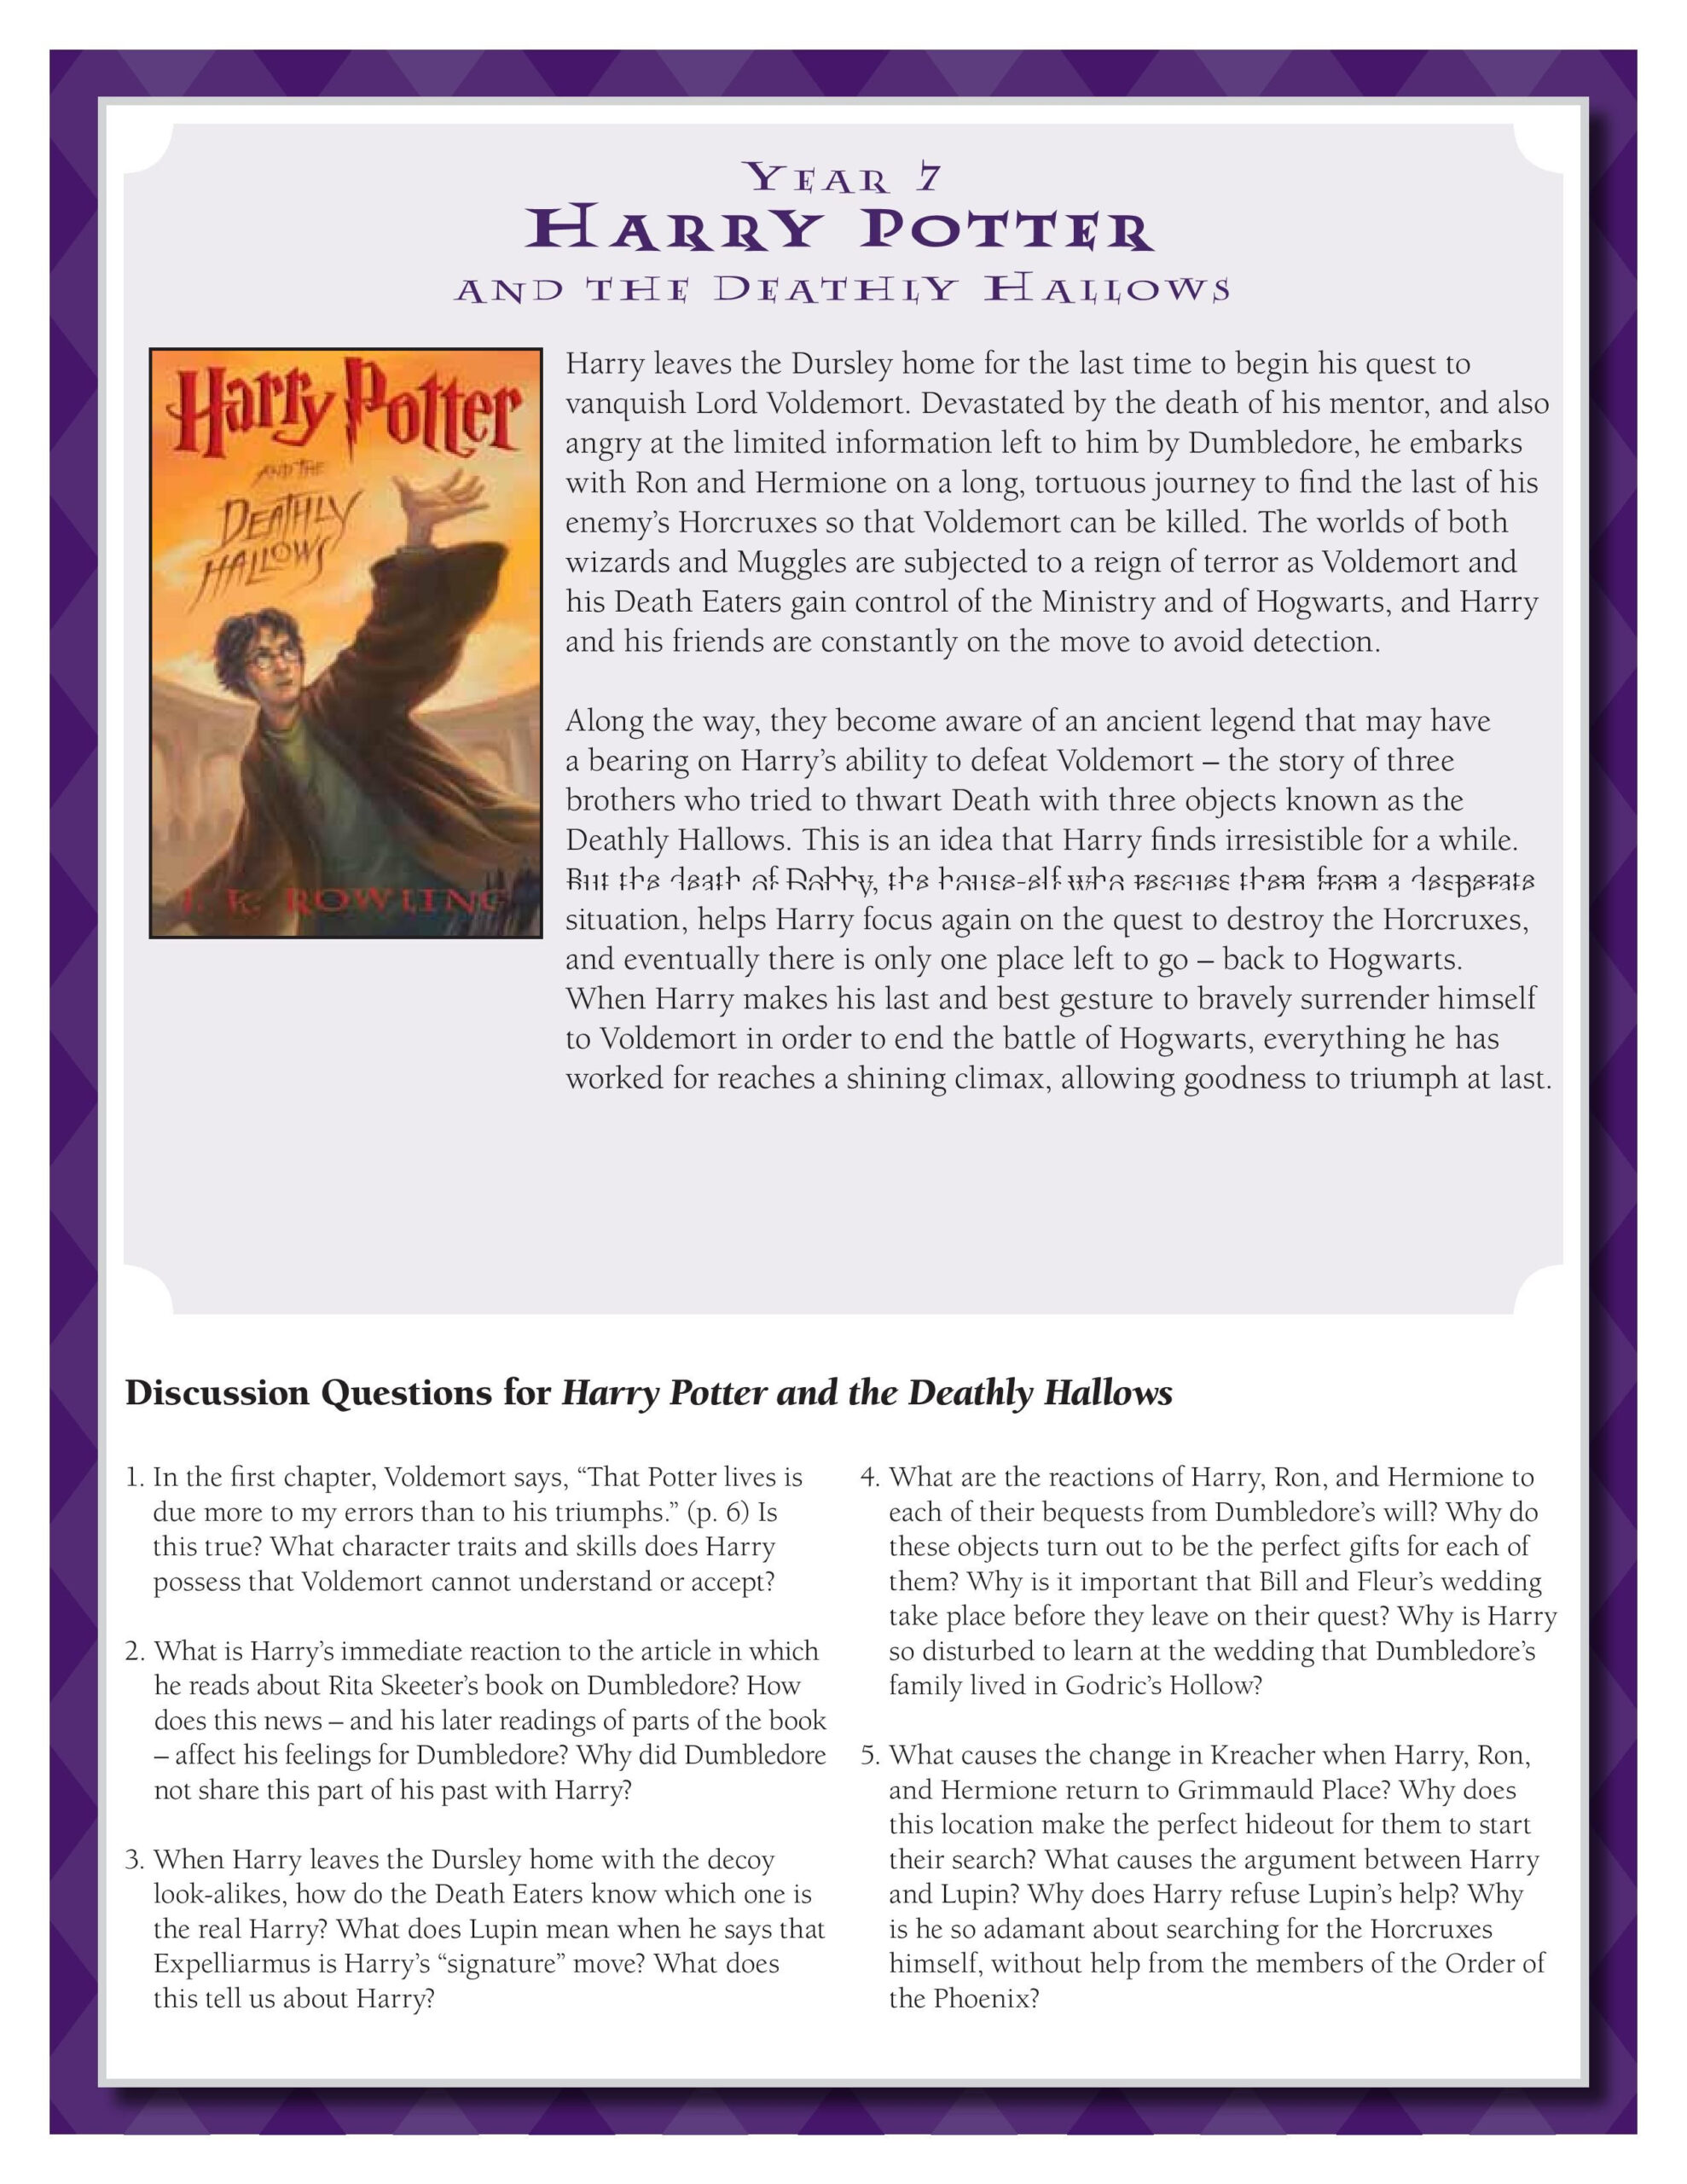 Discussion Guide For Harry Potter And The Deathly Hallows